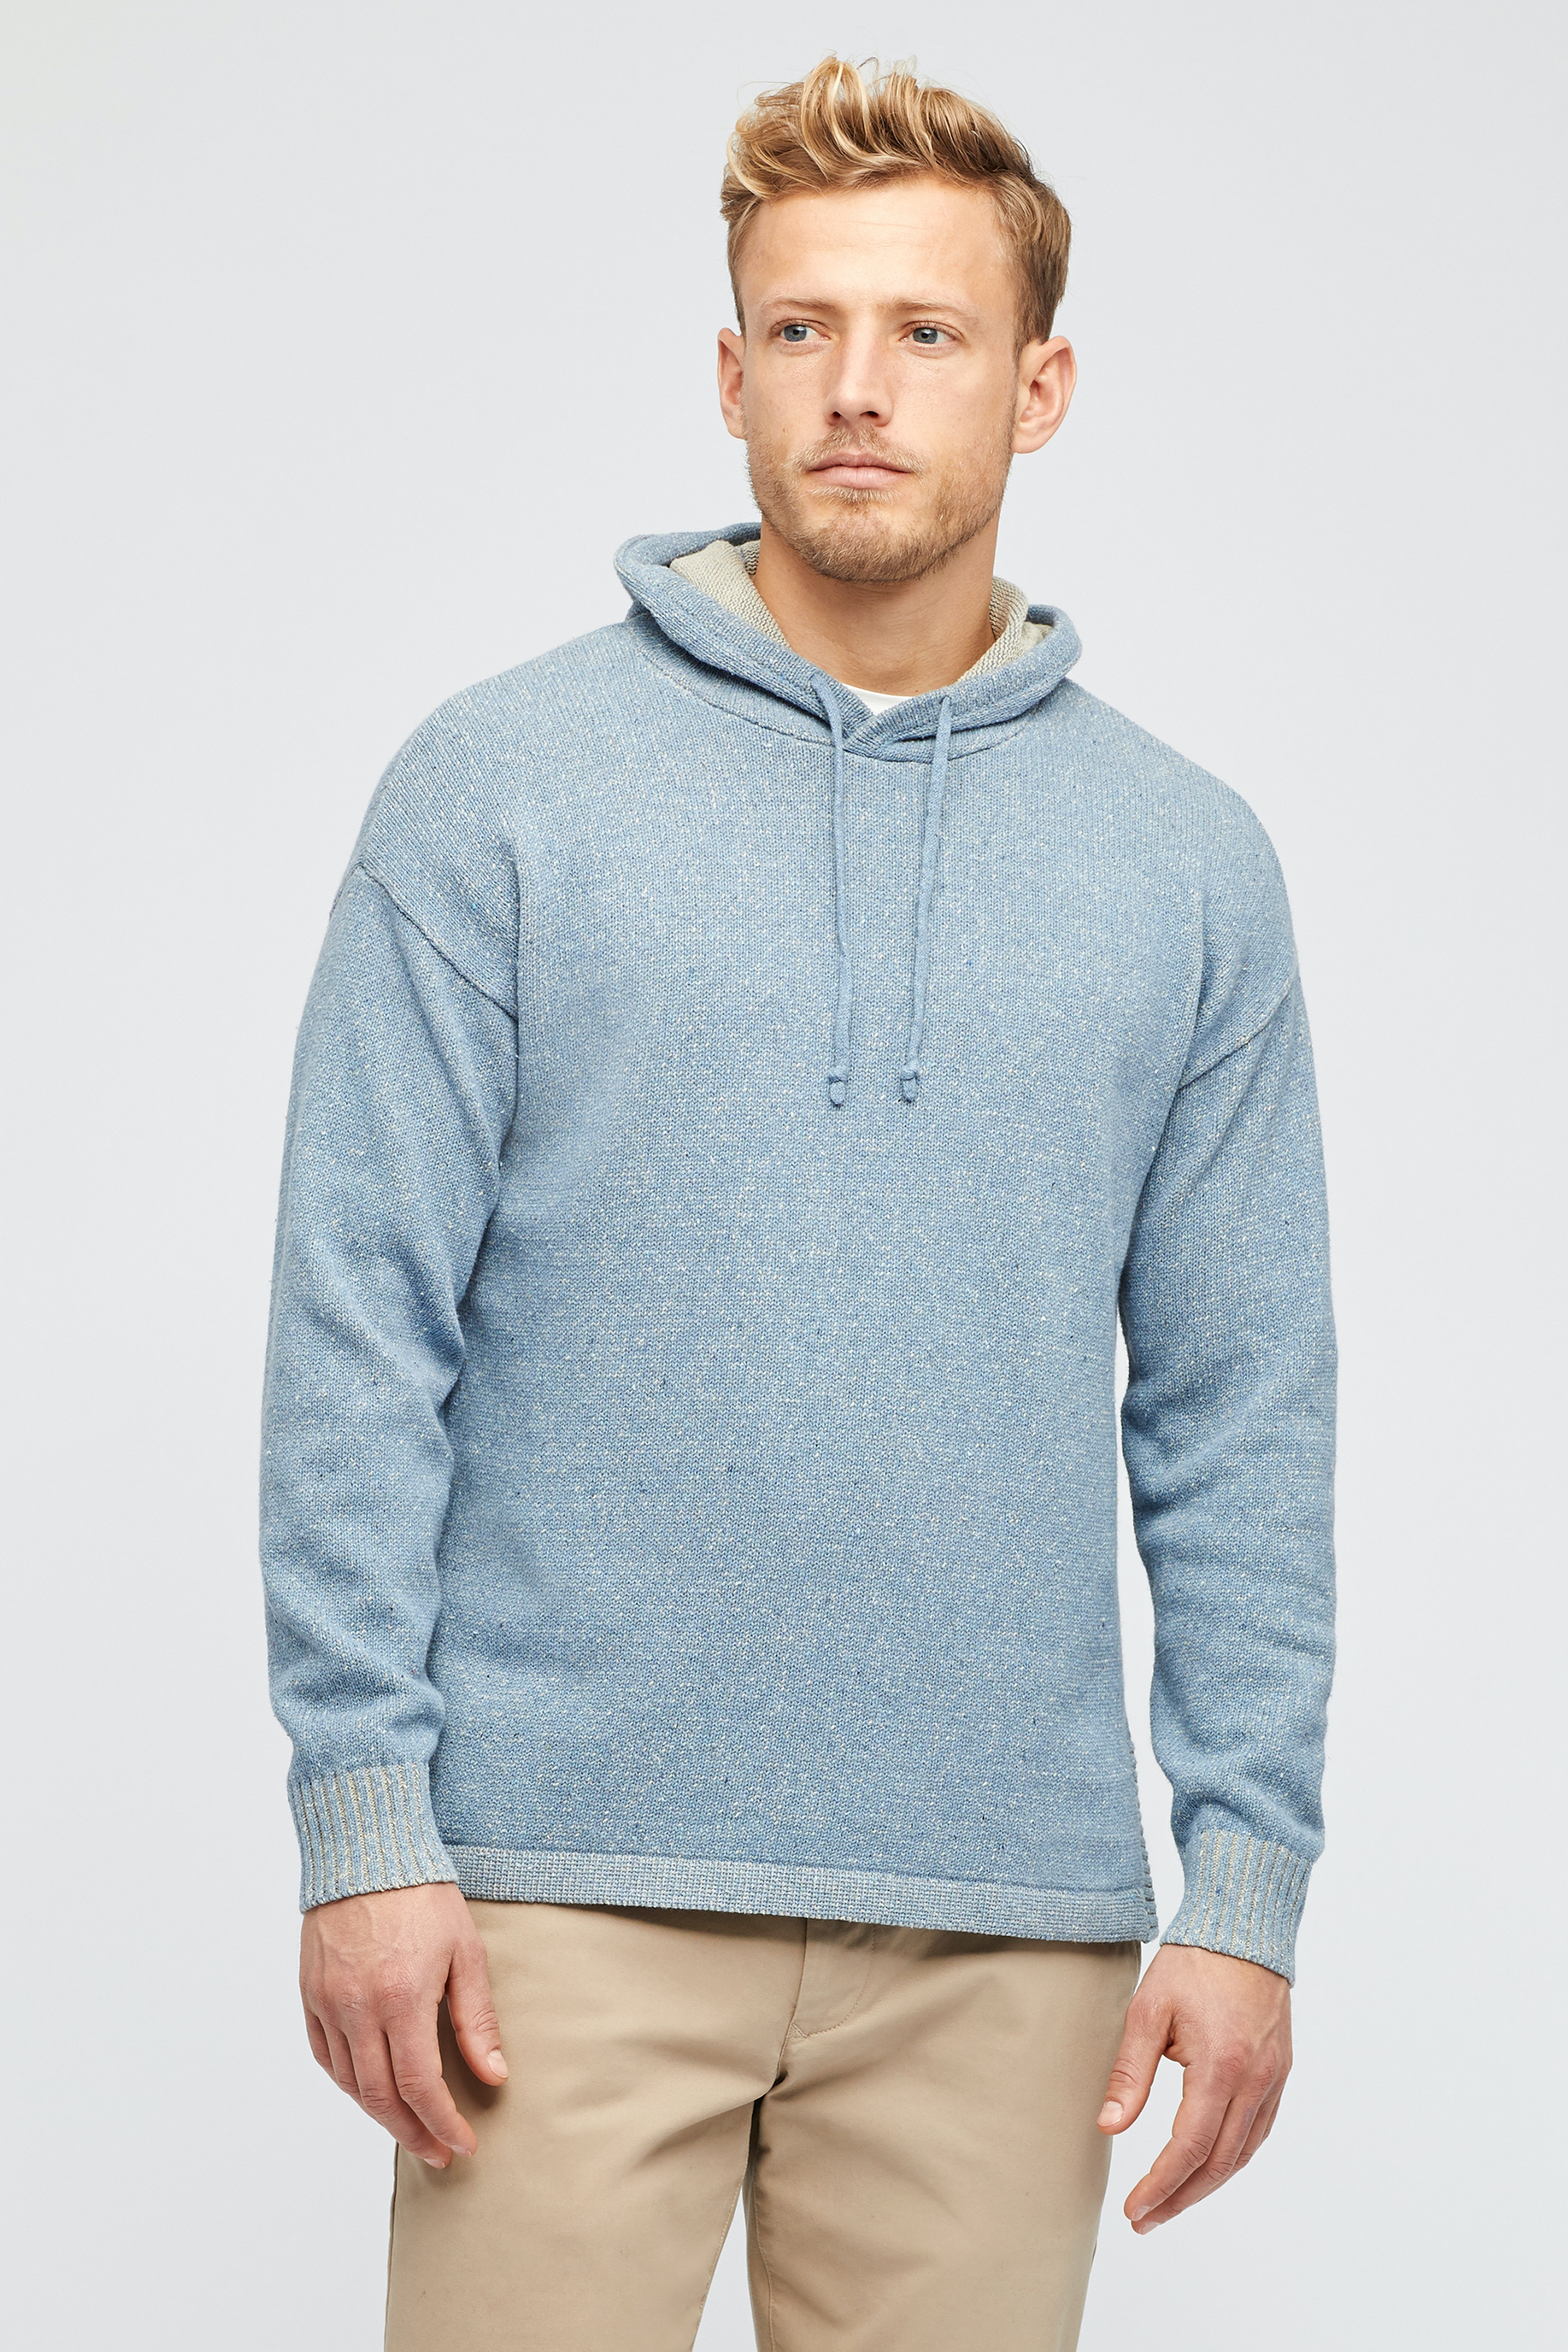 Cotton Poncho Hoodie Sweater